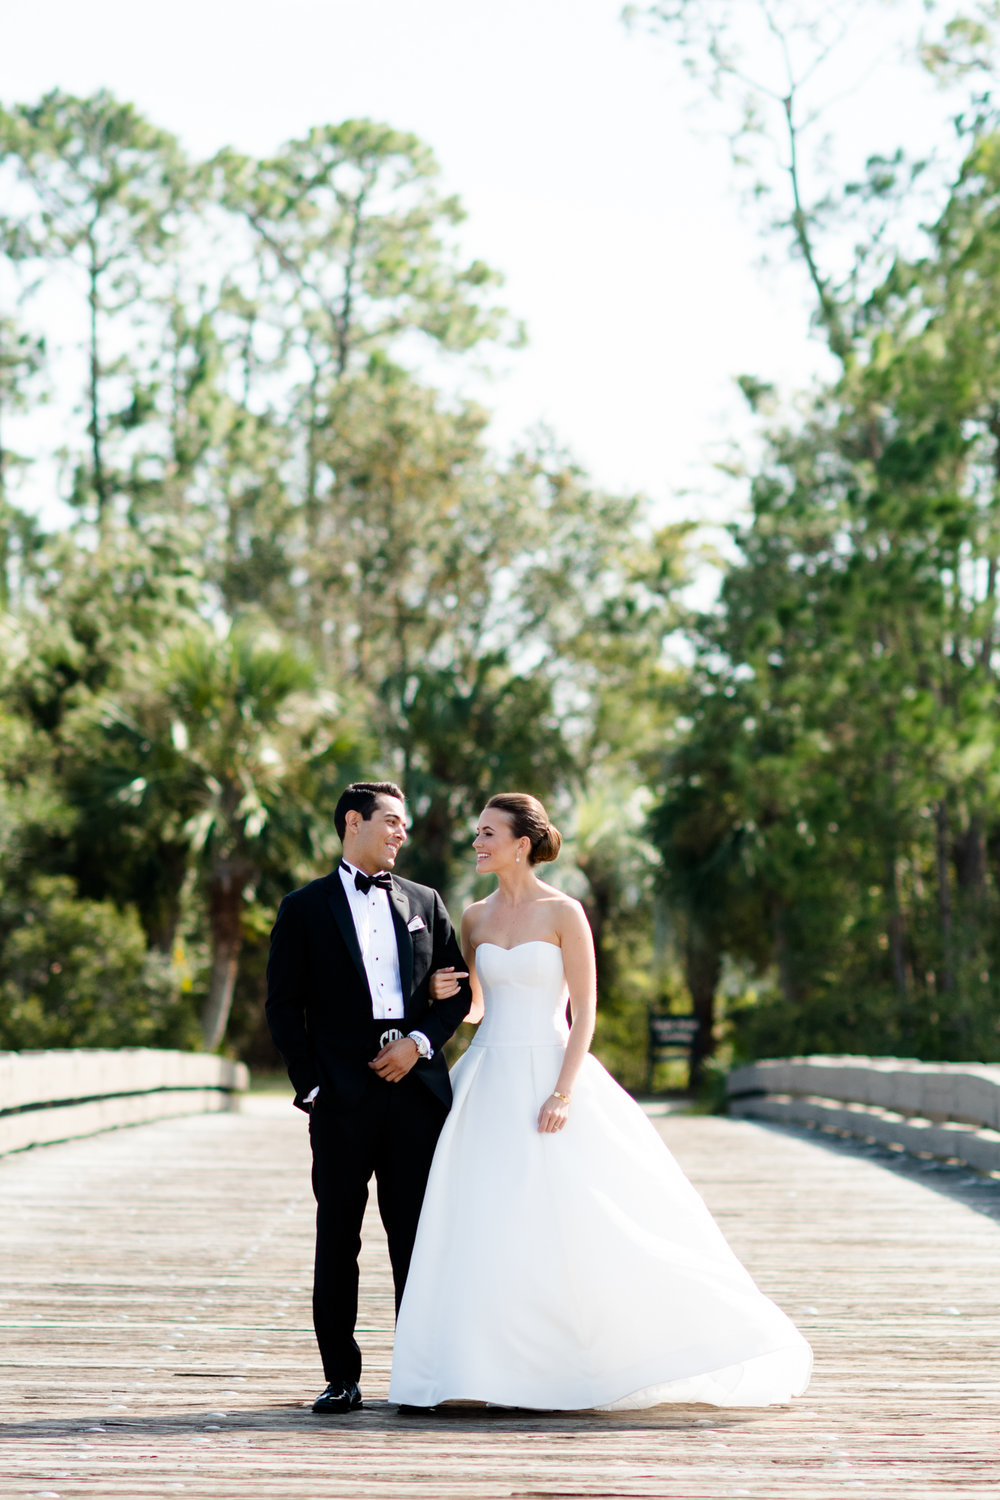 Wedding portraits of bride and groom in Kiawah, South Carolina